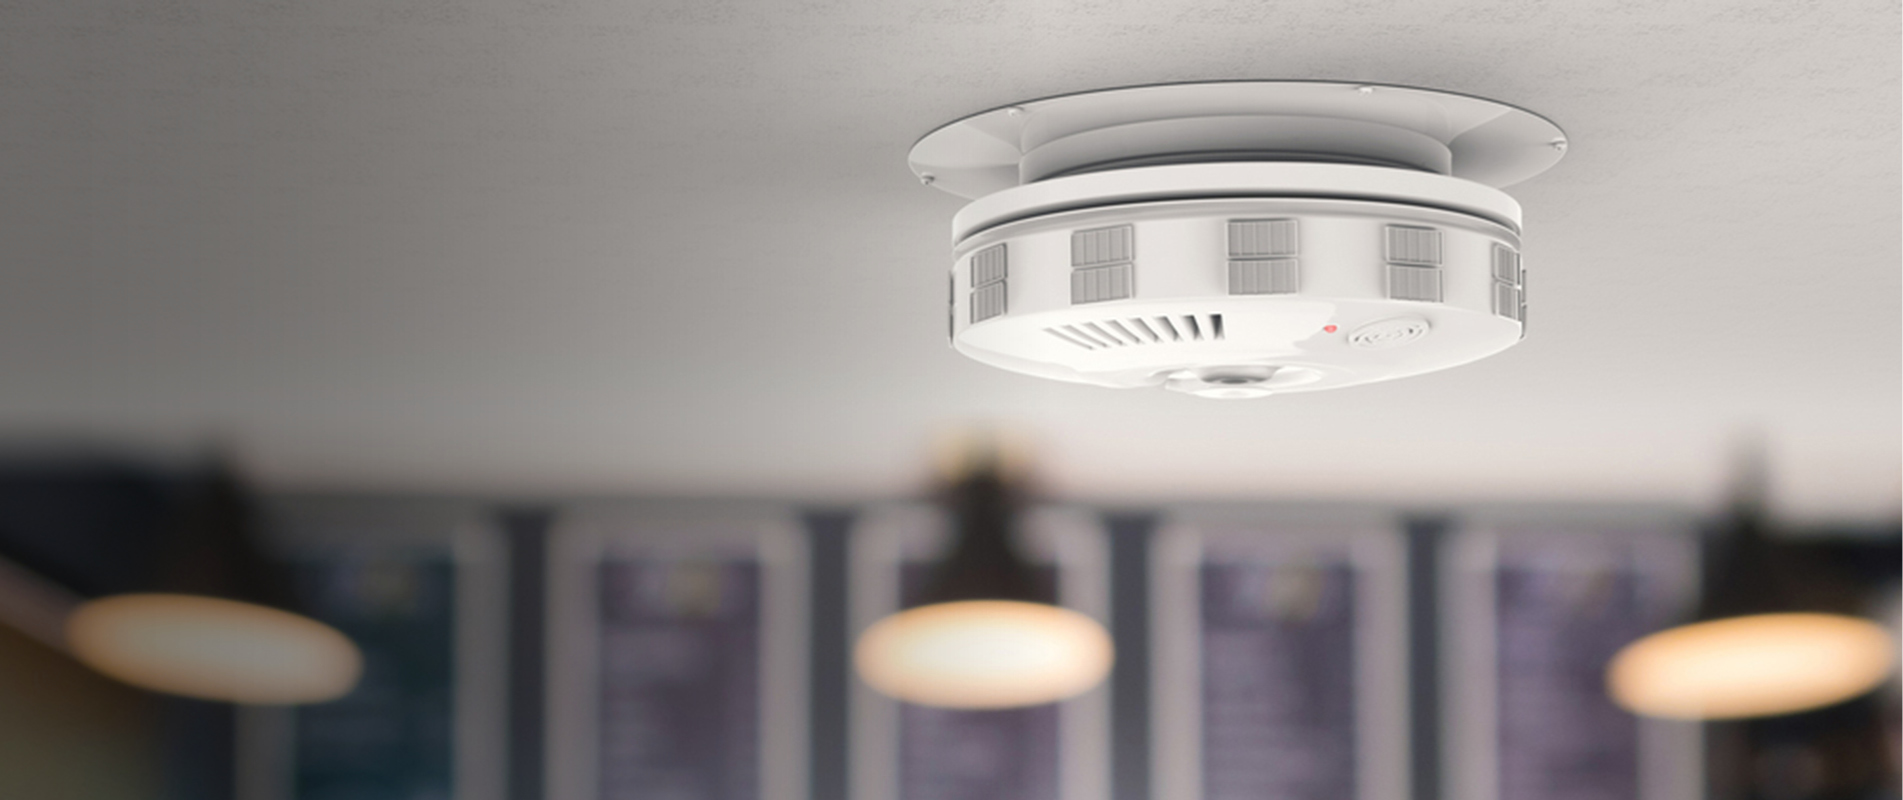 fire alarm smoke detector on ceiling